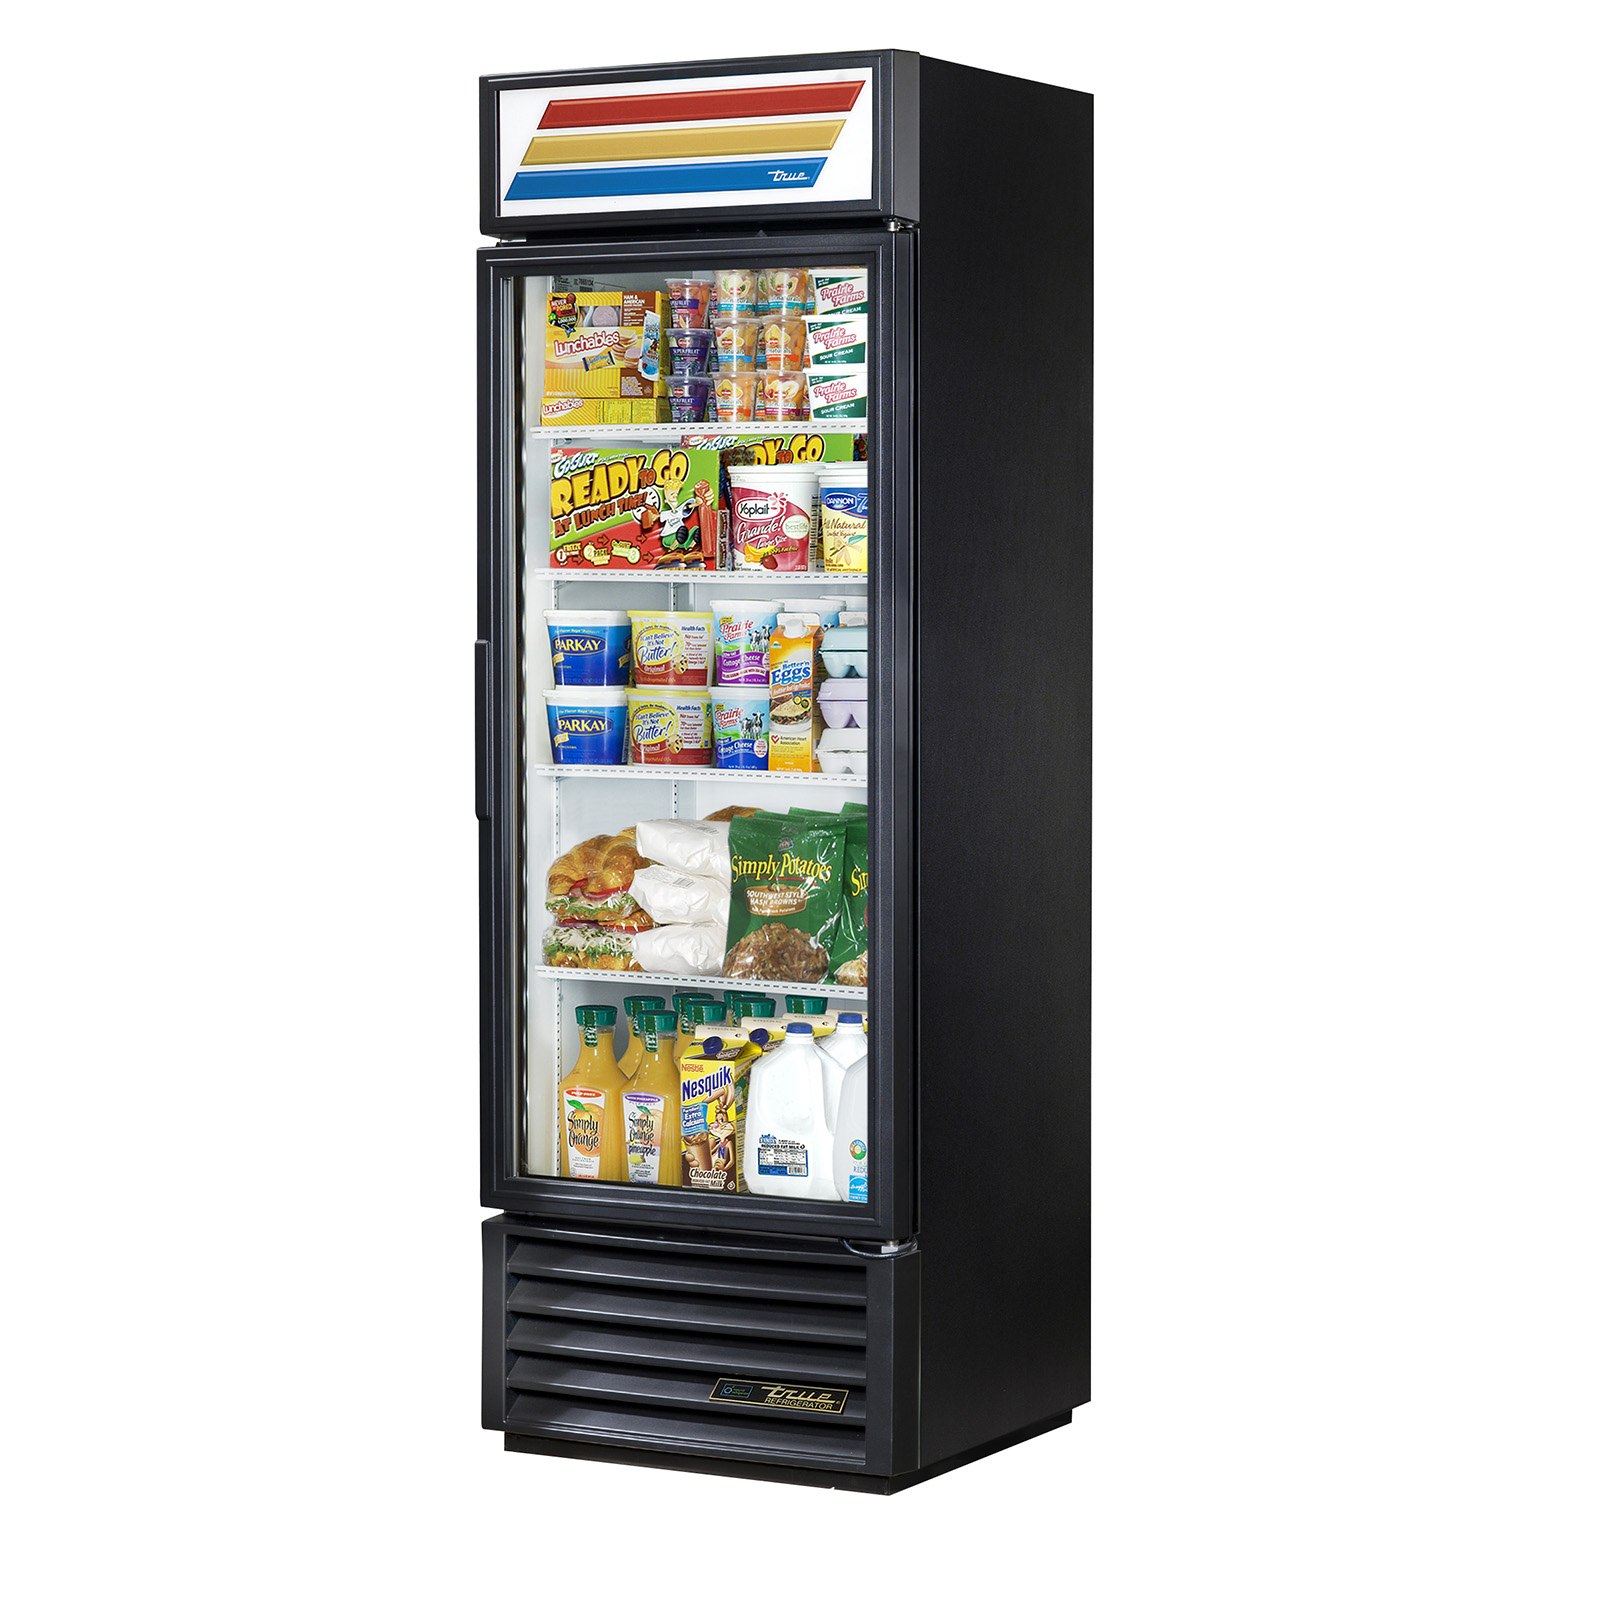 GDM-19T-HC-LD True - Refrigerated Merchandiser one-section